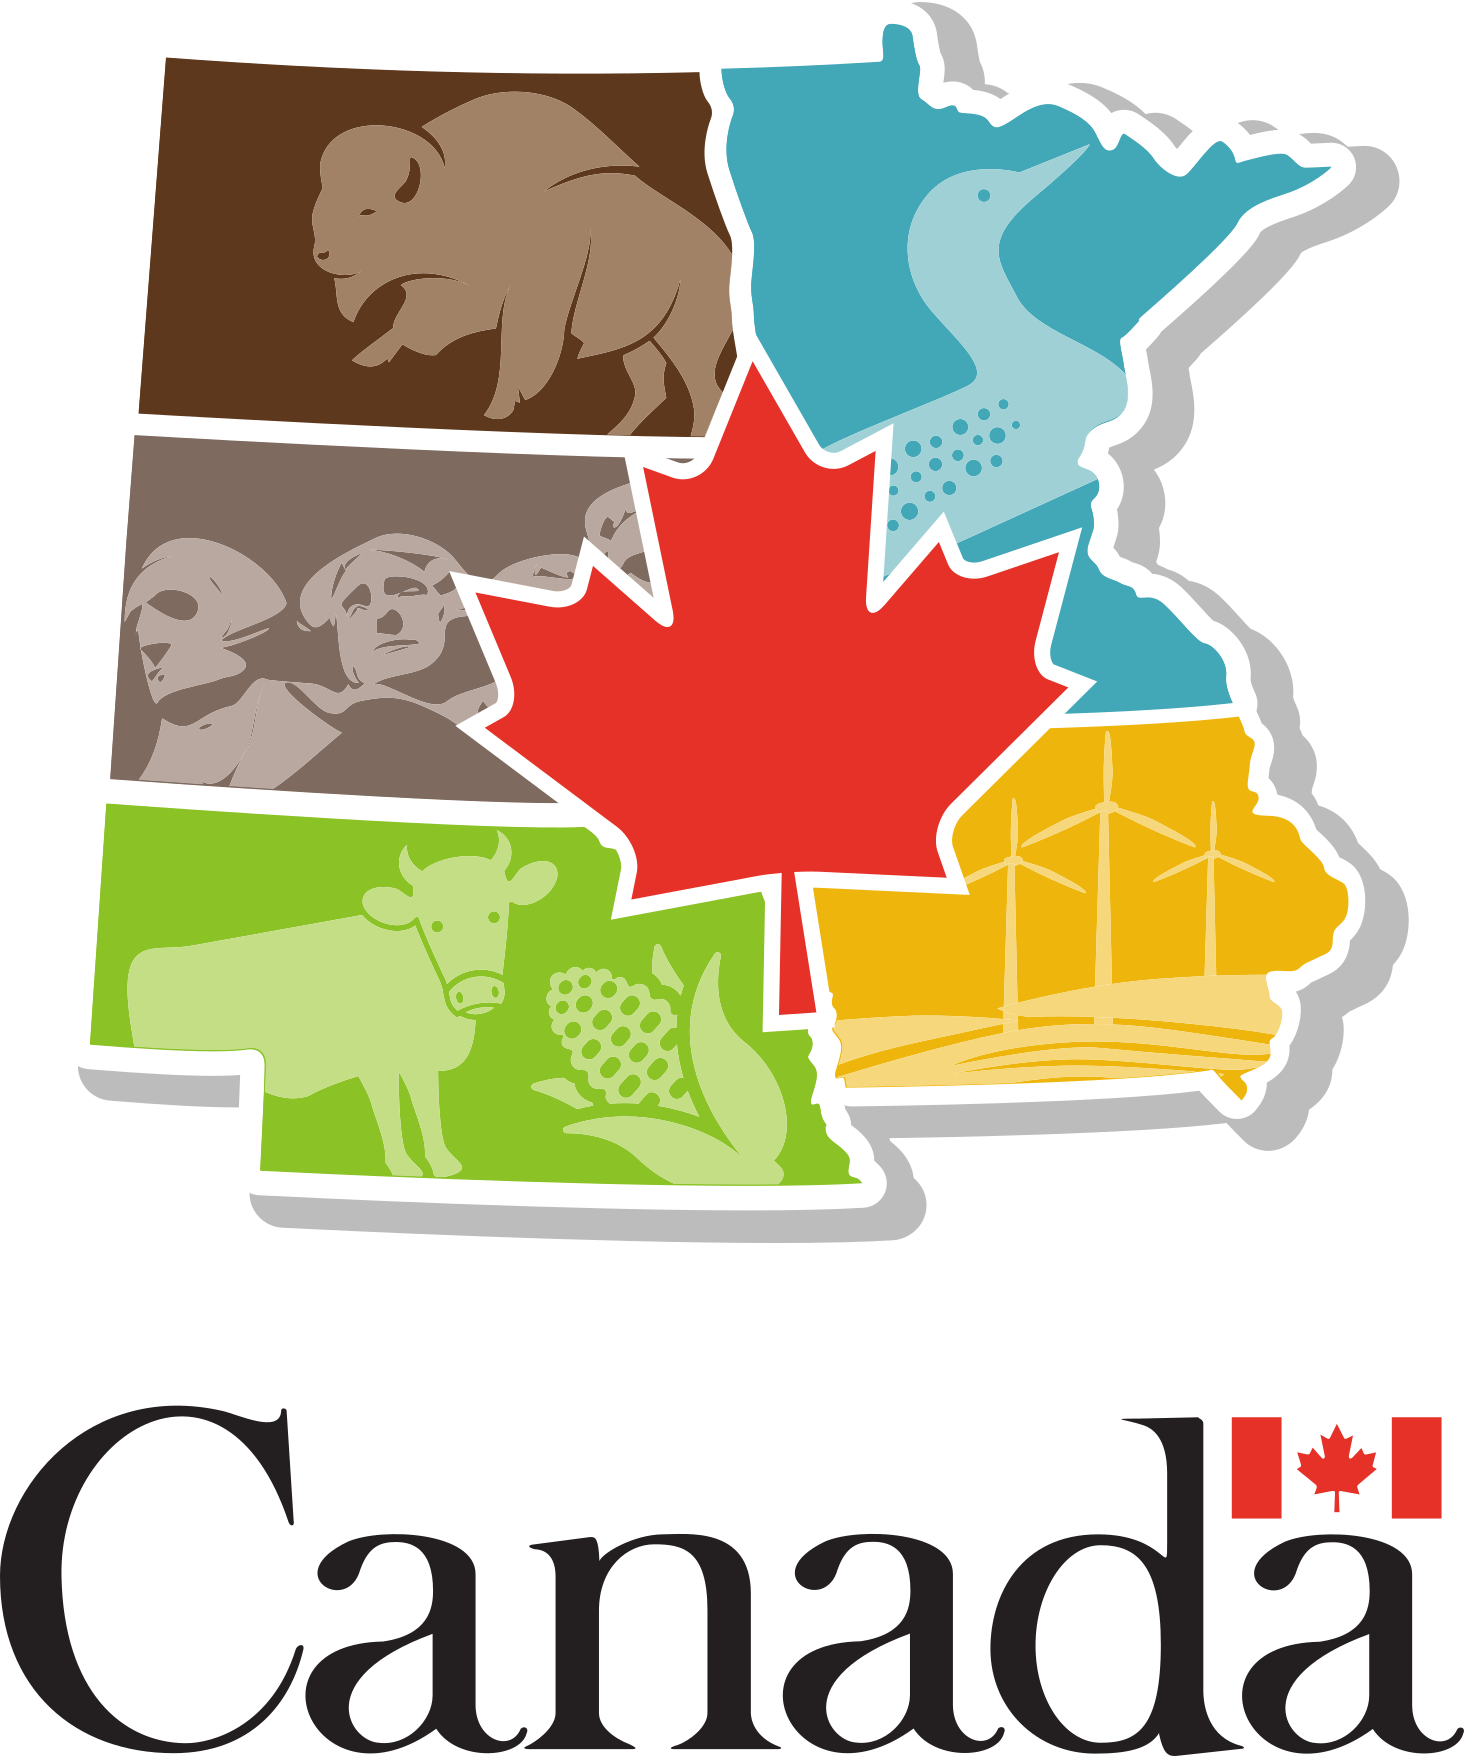 Consulate-General-of-Canada-logo-_2.png